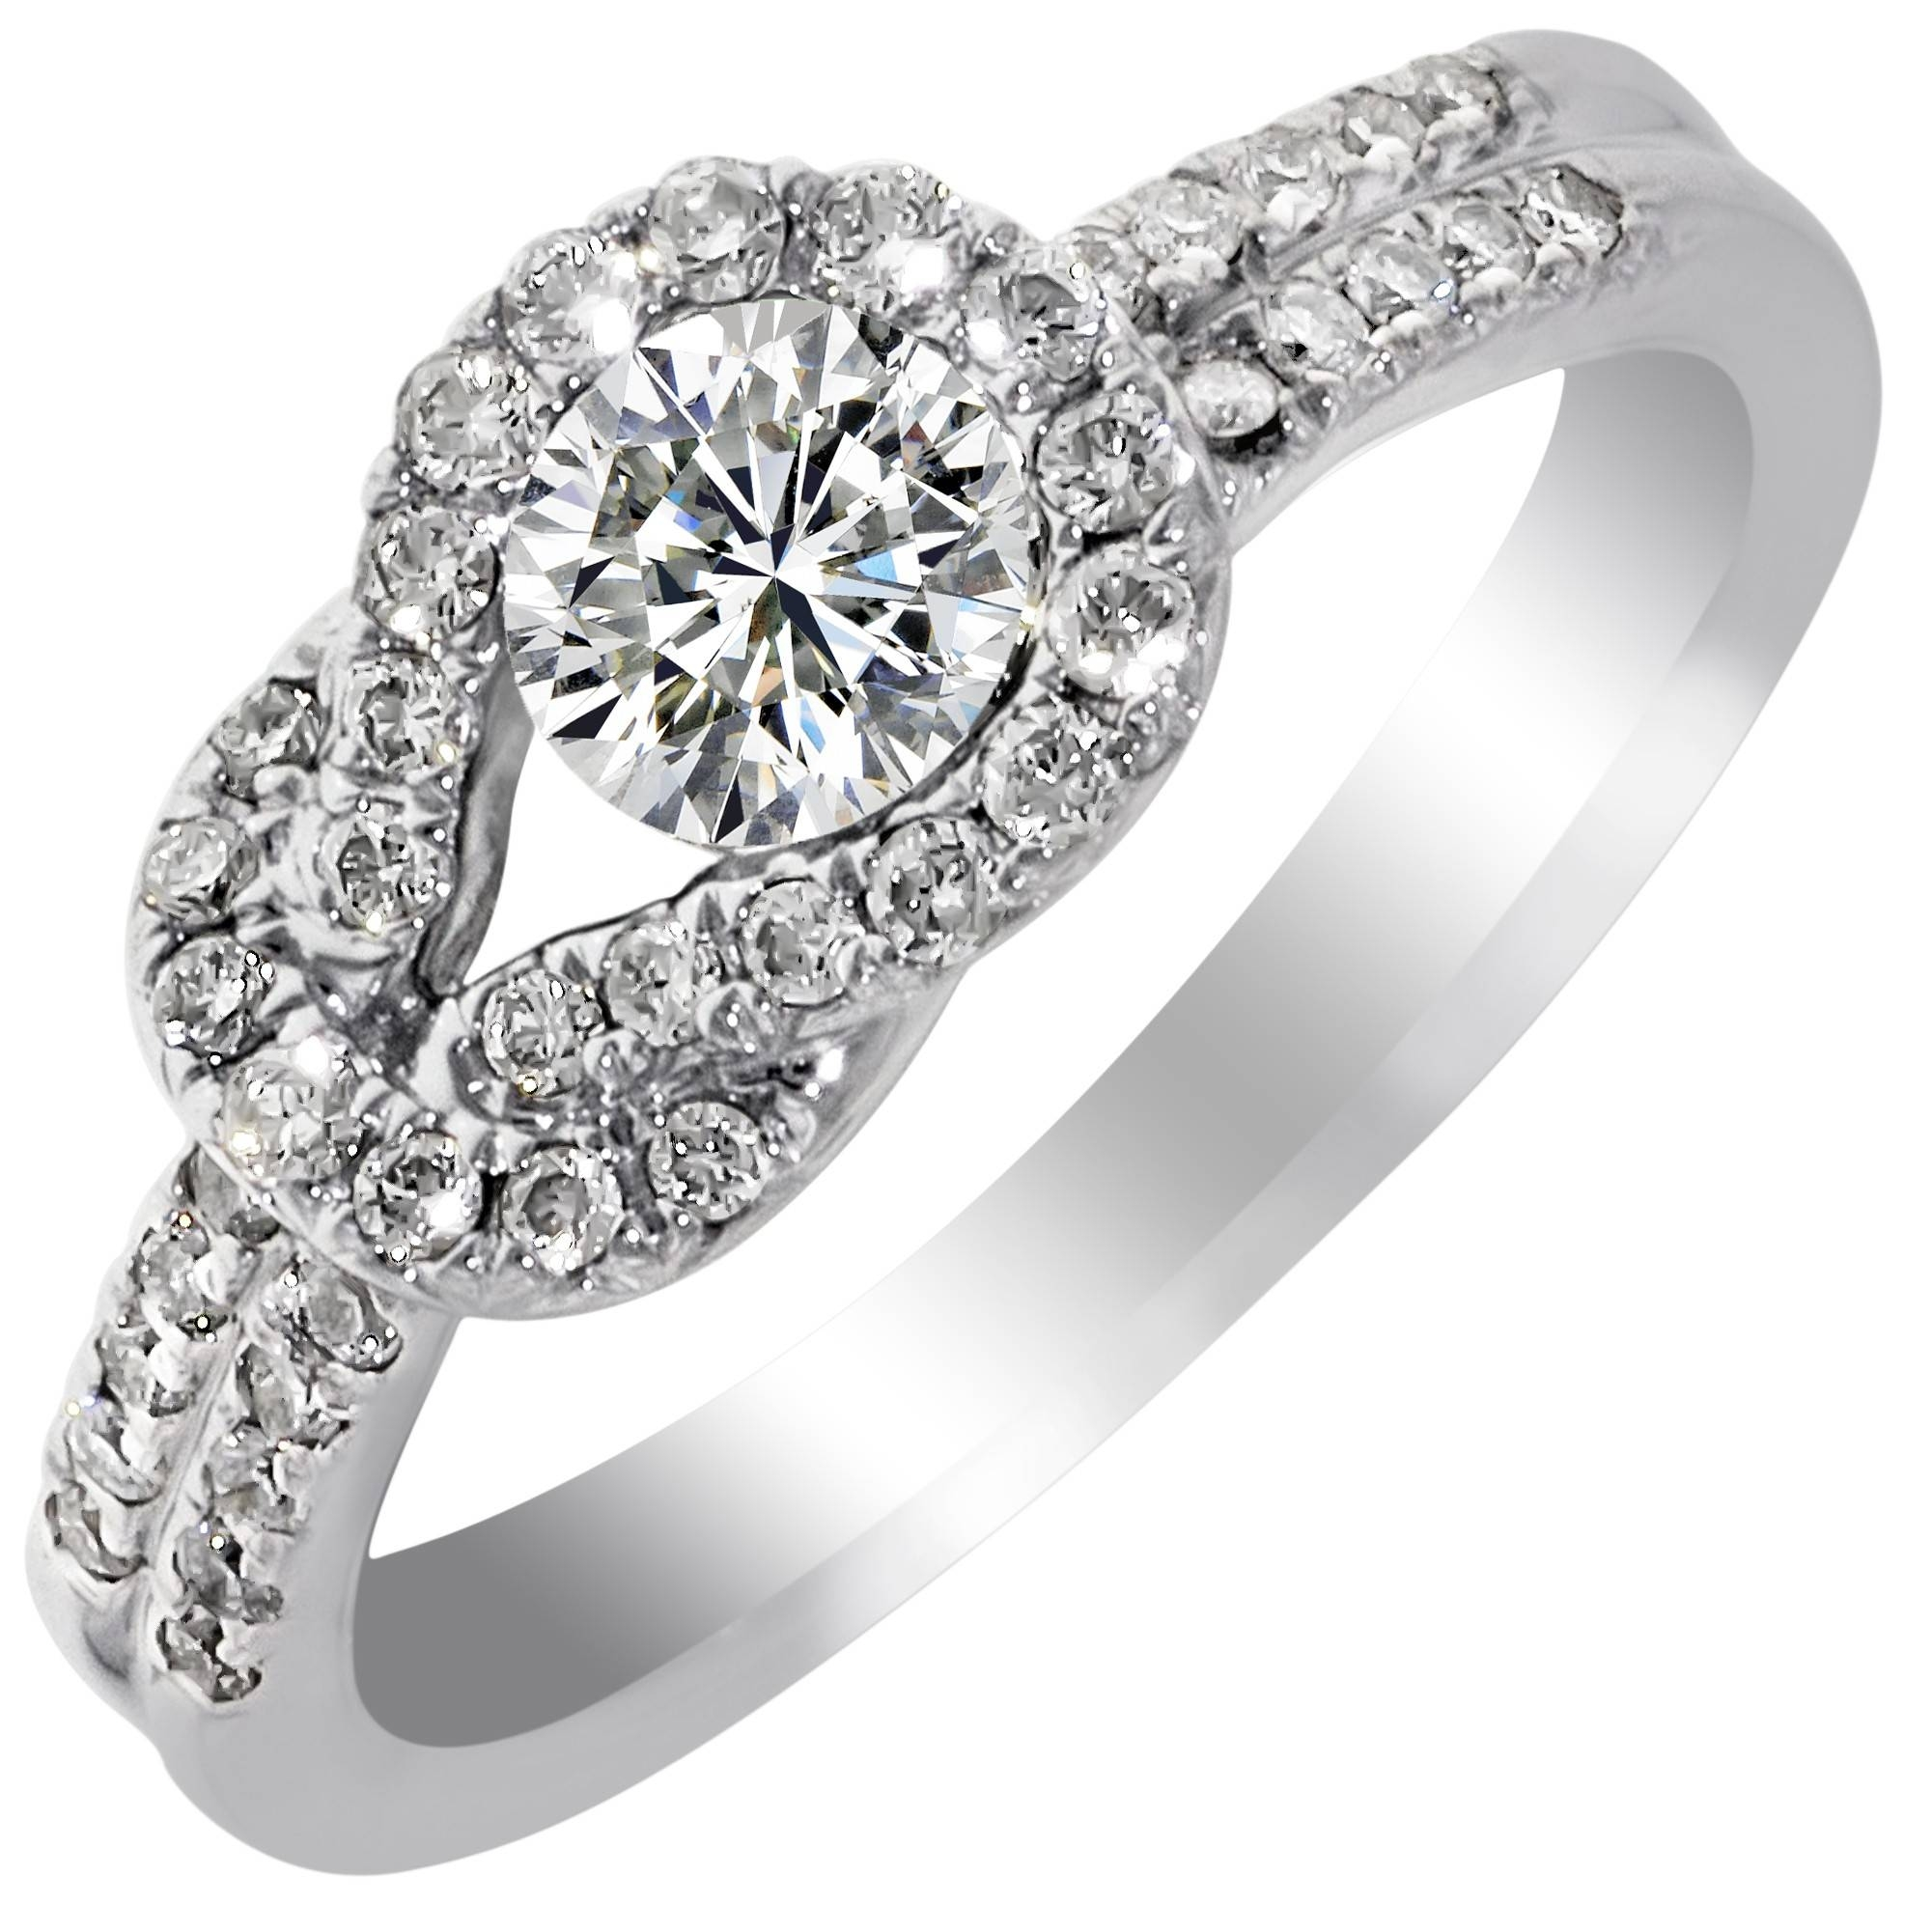 Estate Everlon Diamond Knot Ring In 14kt White Gold (5/8ct Tw) Pertaining To Engagement Rings Knot (View 11 of 15)